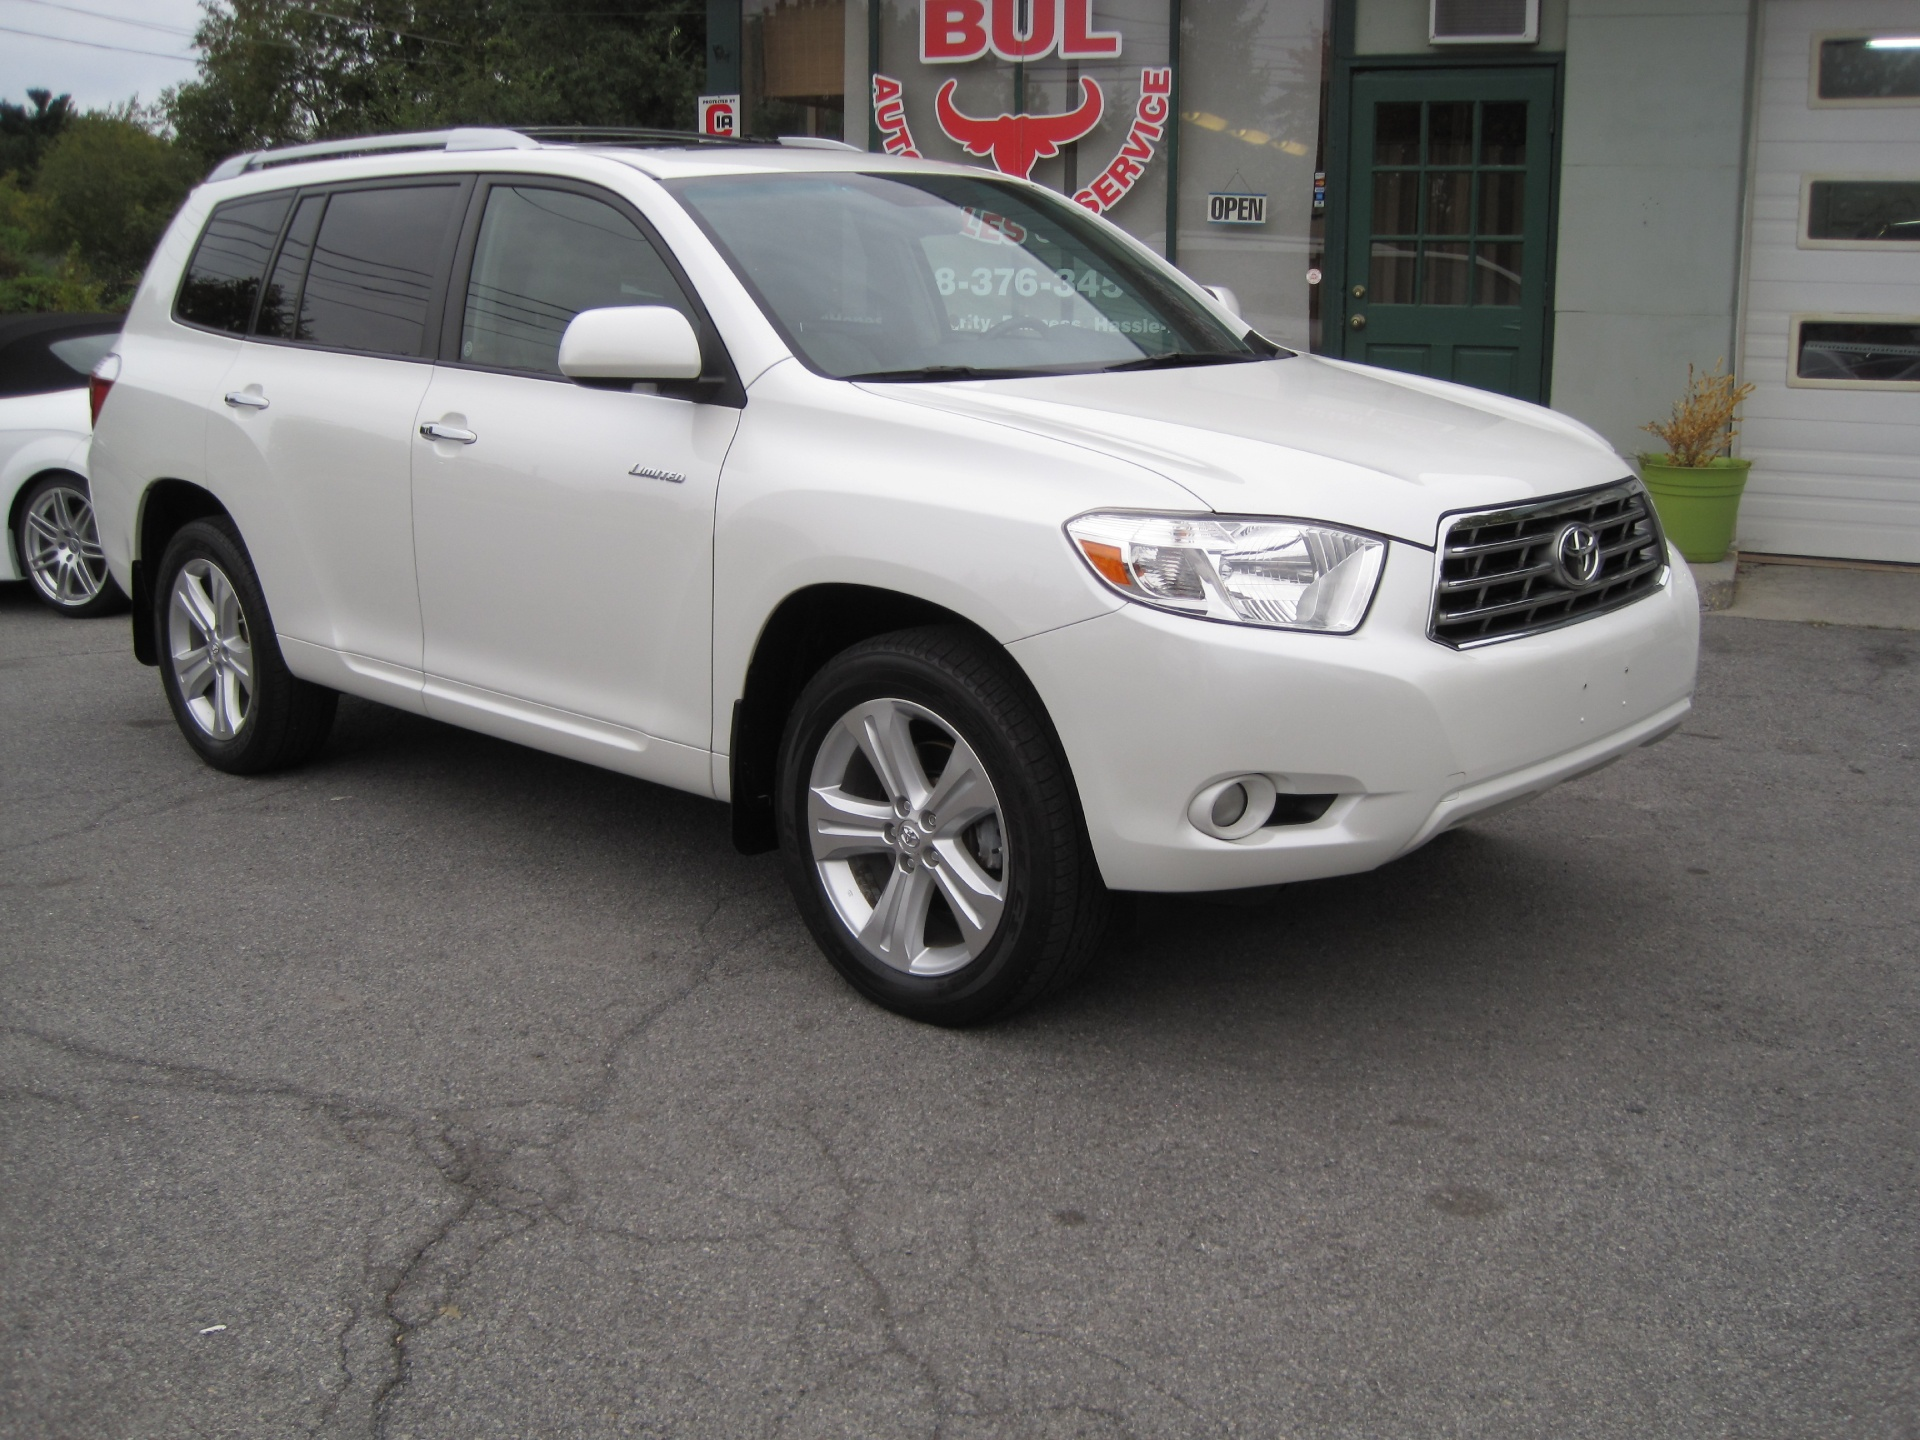 2009 toyota highlander limited 4wd 4x4 superb condition leather backup camera heated seats. Black Bedroom Furniture Sets. Home Design Ideas